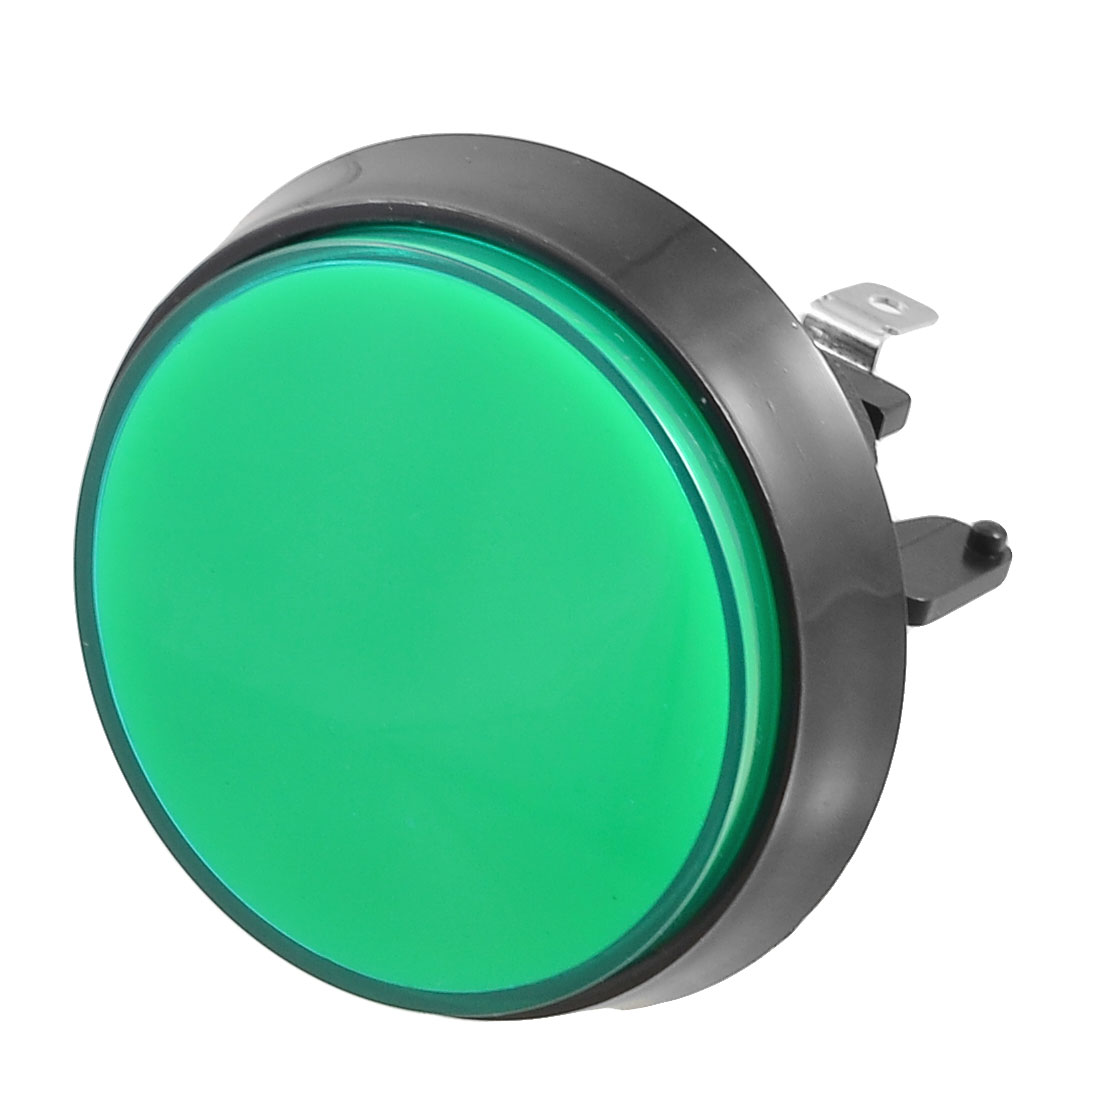 Arcade Game Machines 52mm Dia Green Cap Momentary Push Button for Switch